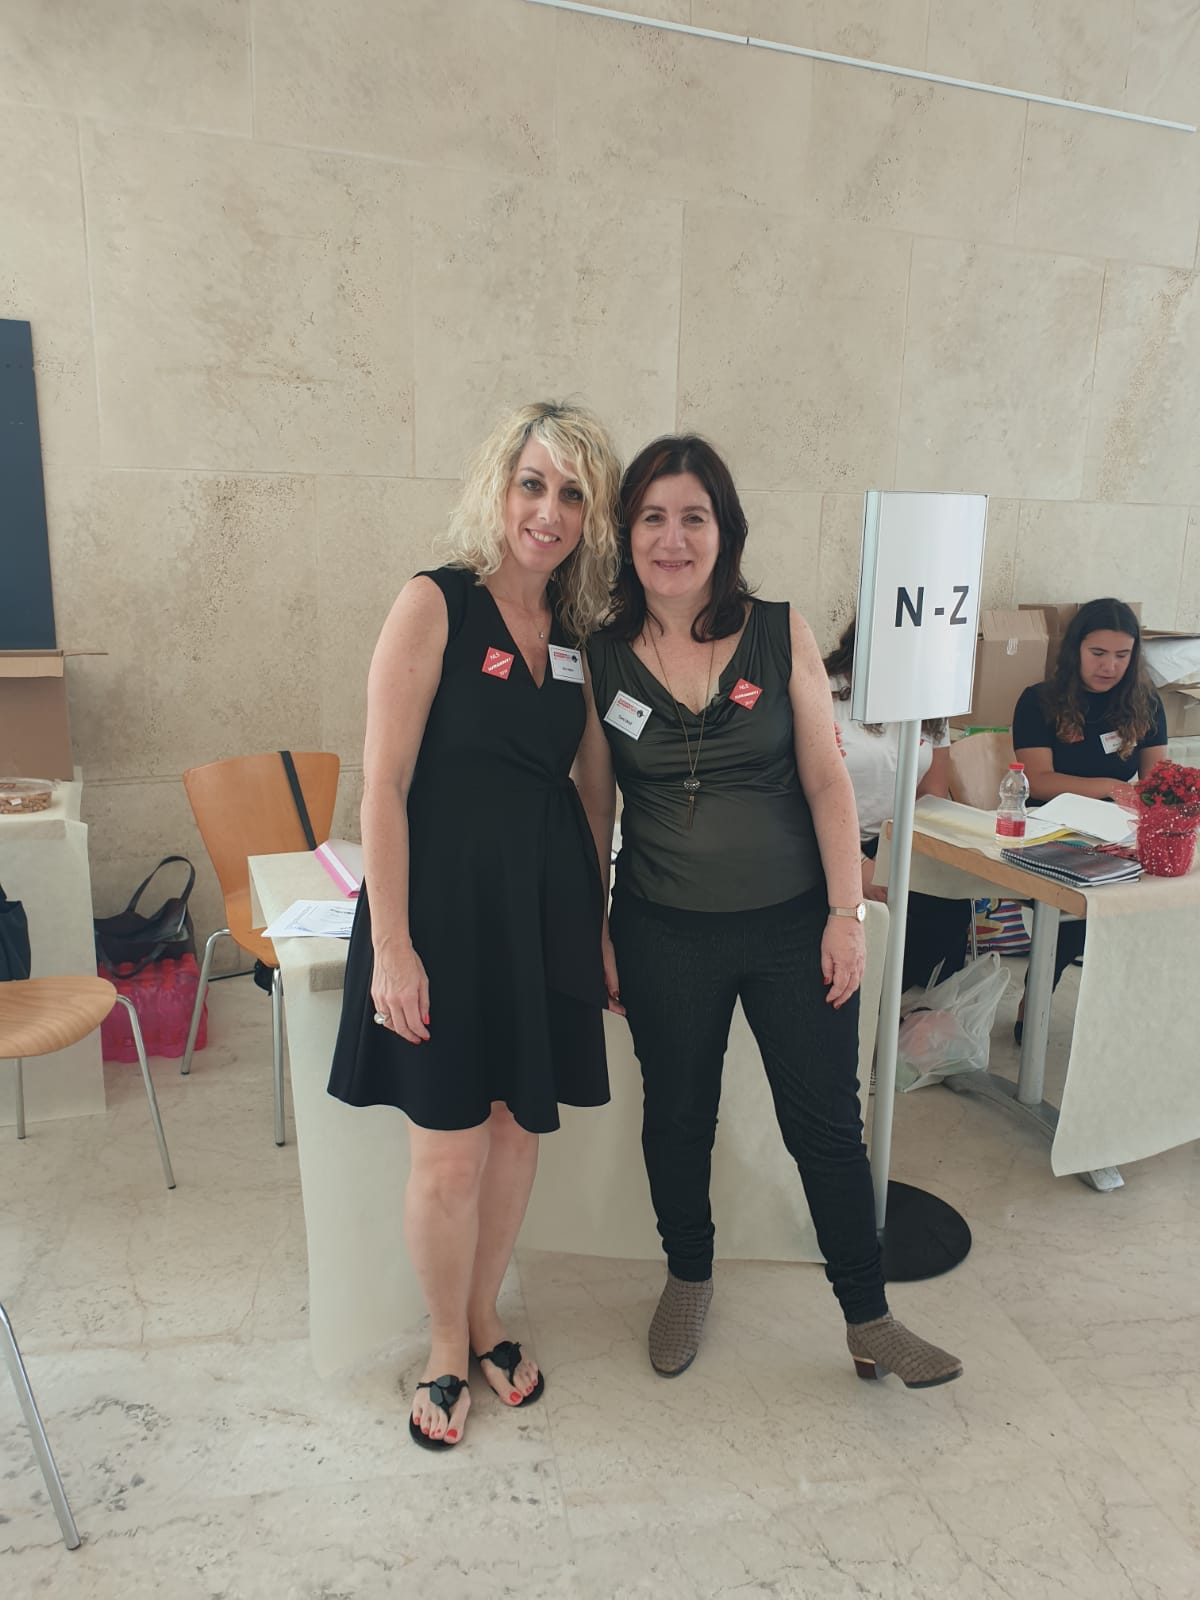 Miri Haber and Tammy Weil, Reception and Head of Reception and Catering